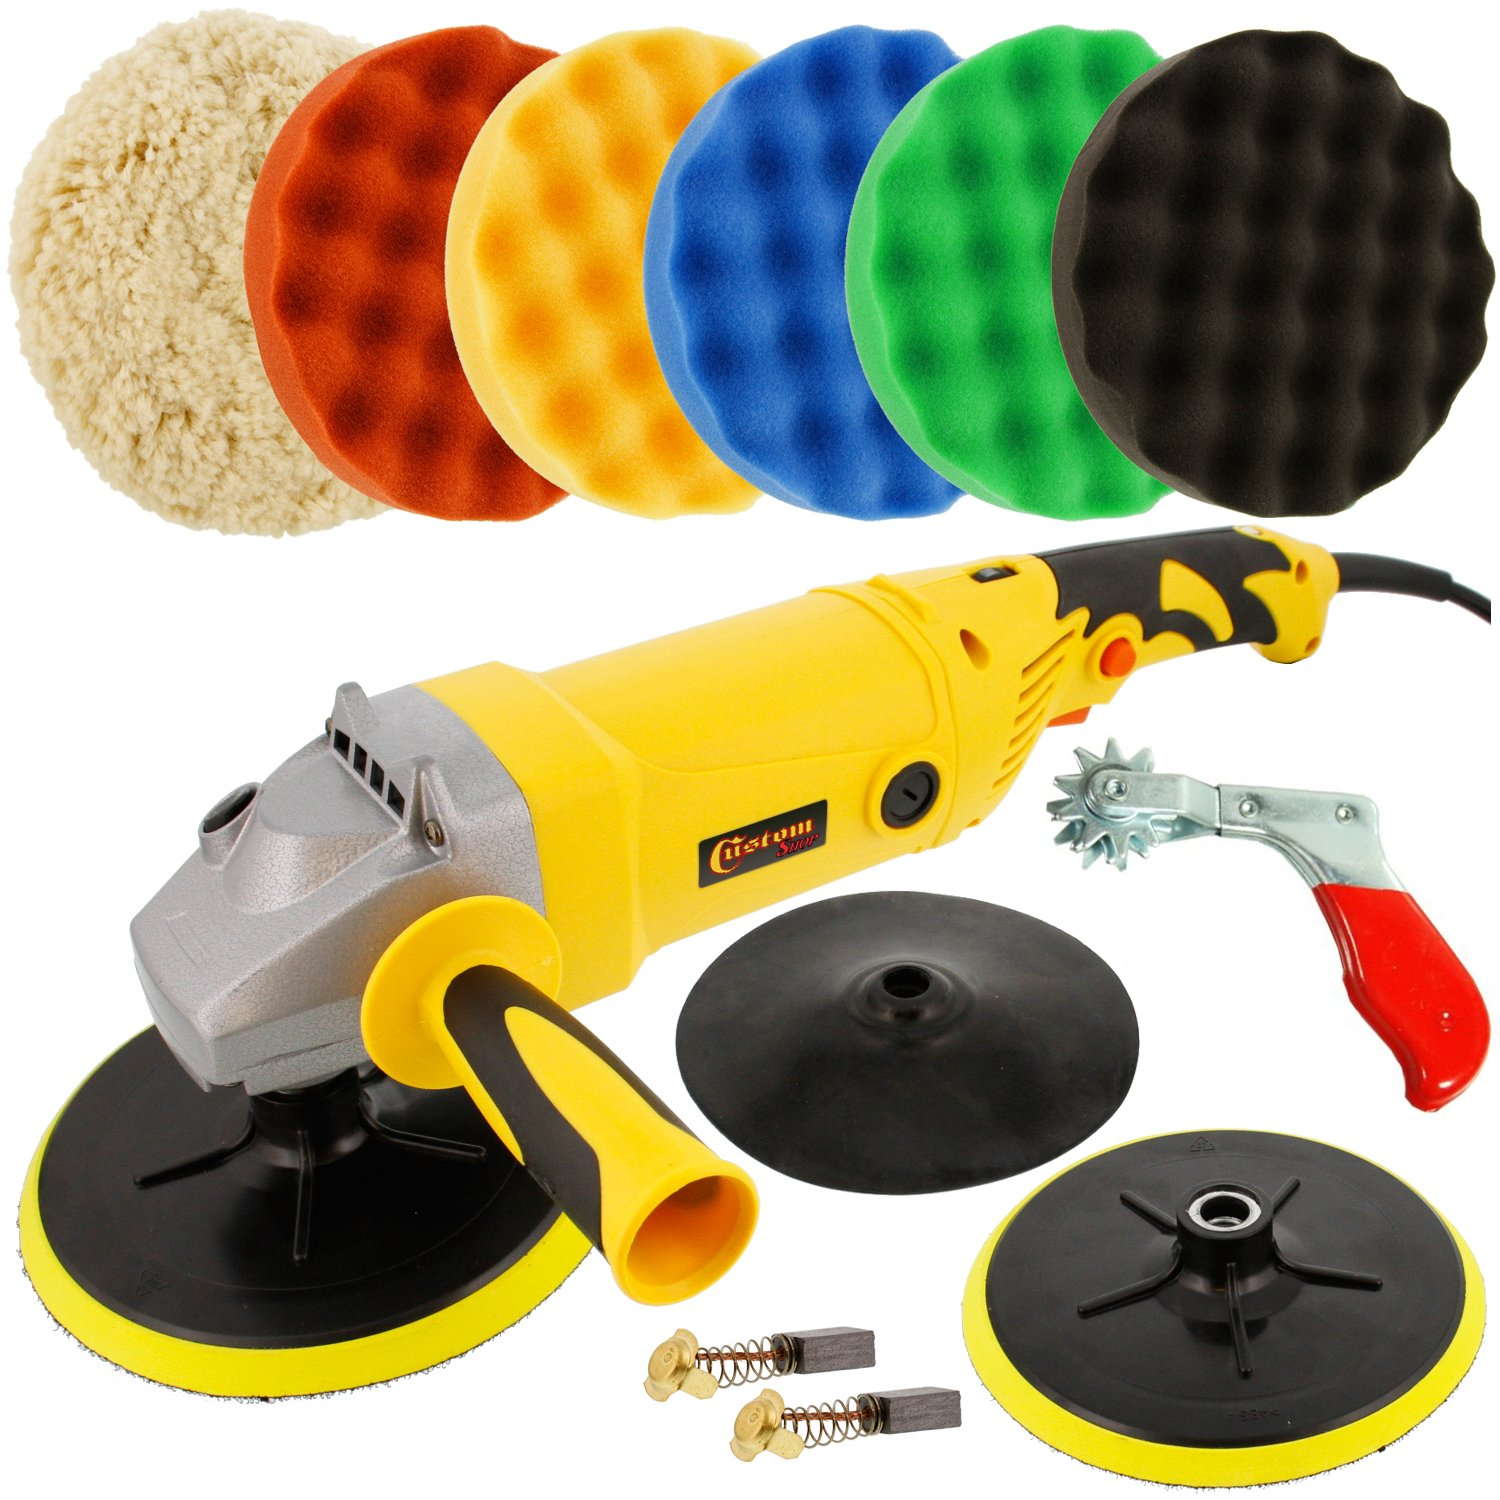 Custom Shop Heavy Duty Variable Speed Polisher with a 6 Pad Buffing and Polishing Kit (5 - 8'' Waffle Foam & 1 - 8'' Wool Grip Pads) - Replacement Set of Motor Brushes - Buffing Pad Cleaning Spur